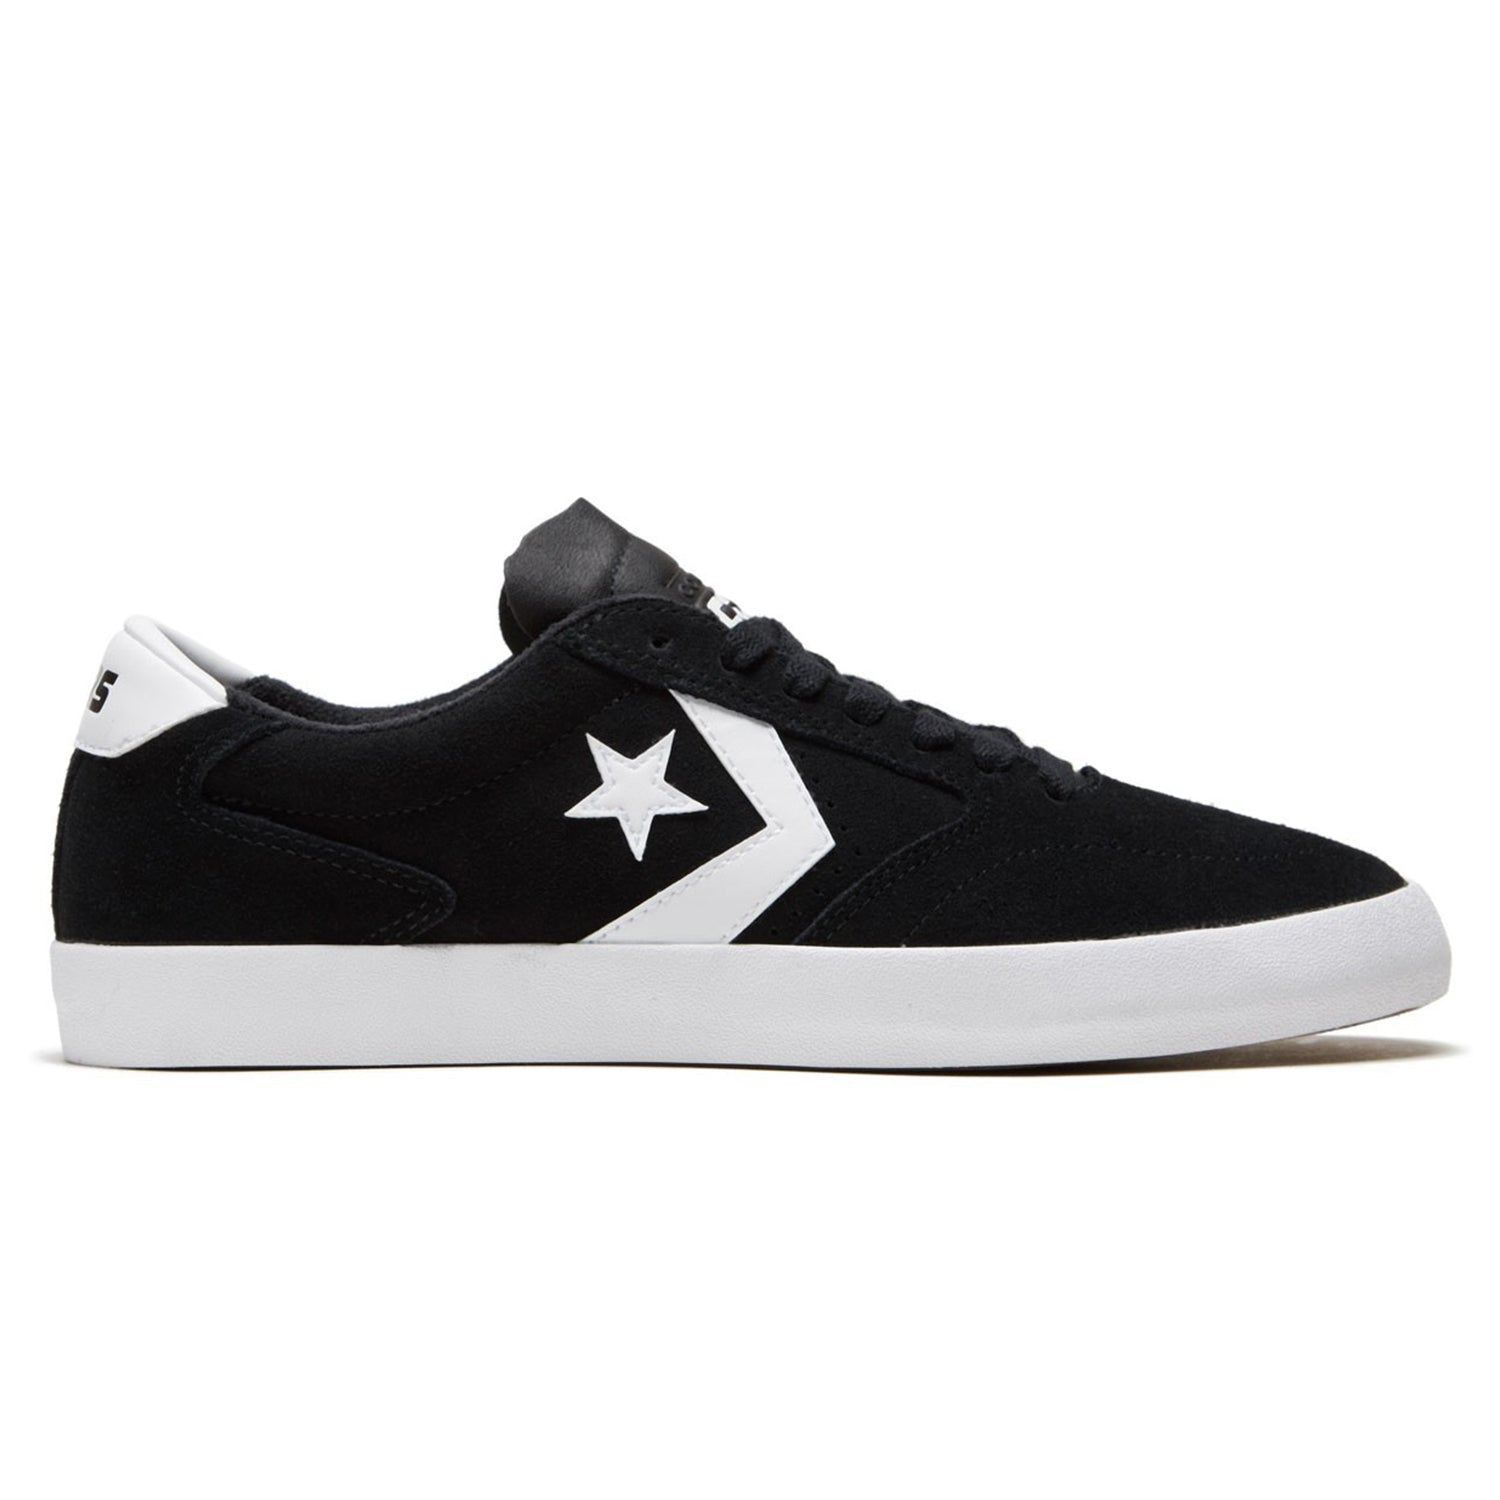 Converse CONS Checkpoint Pro OX Black/White